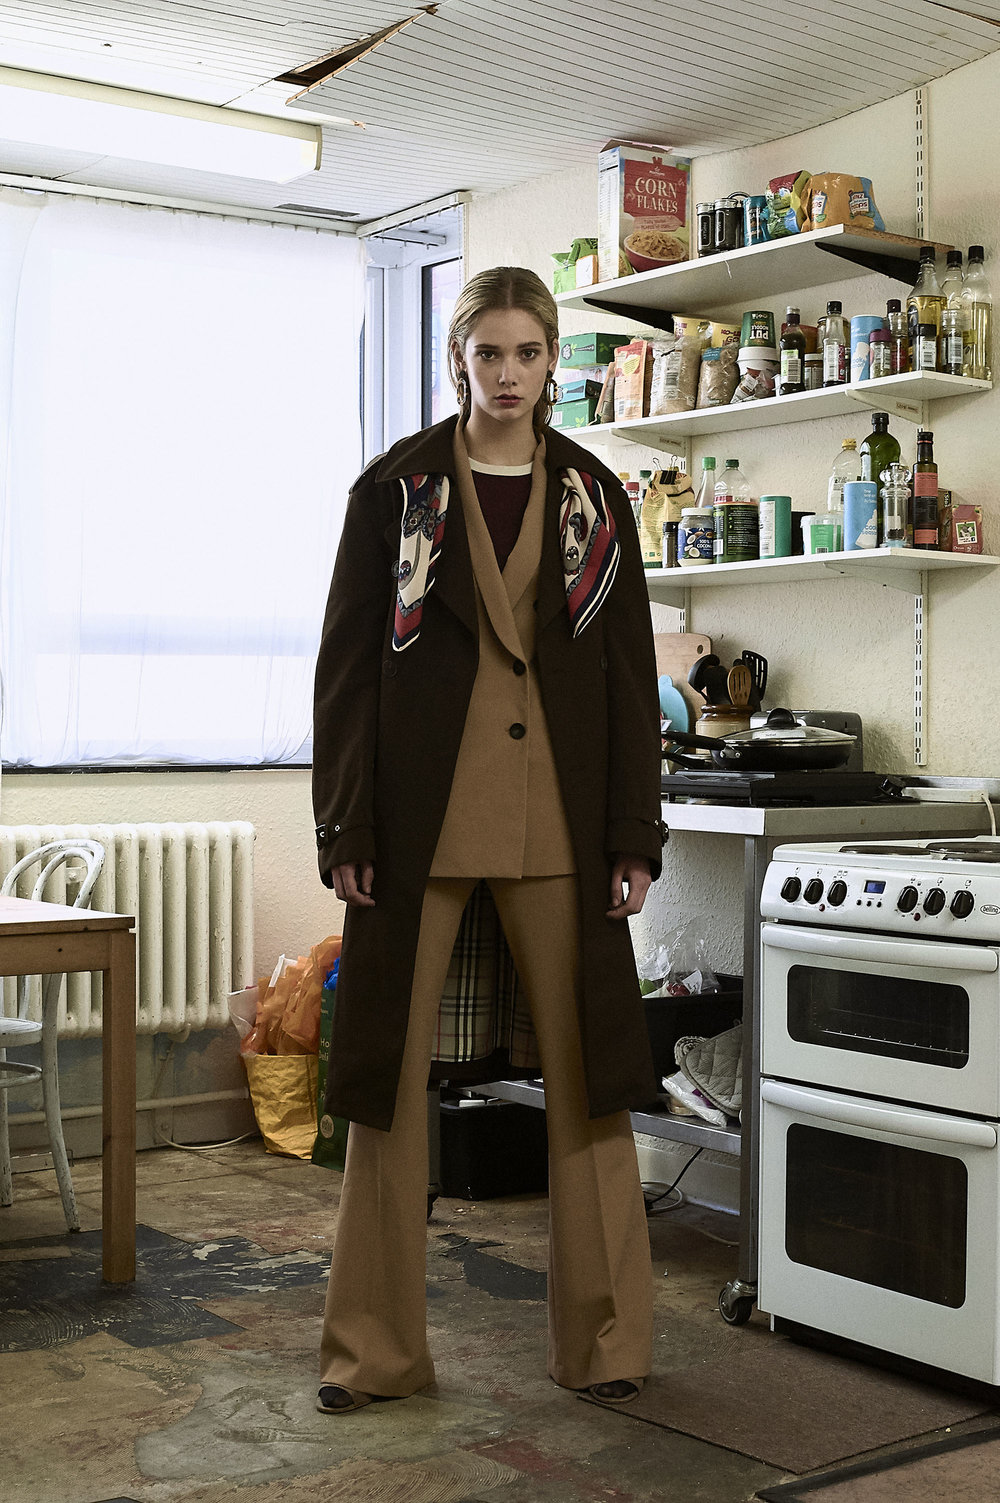 Suit by  Zara , t-shirt at  Urban Outfitters , Coat is  Vintage Burberry's , scarf is vintage, earrings  Topshop